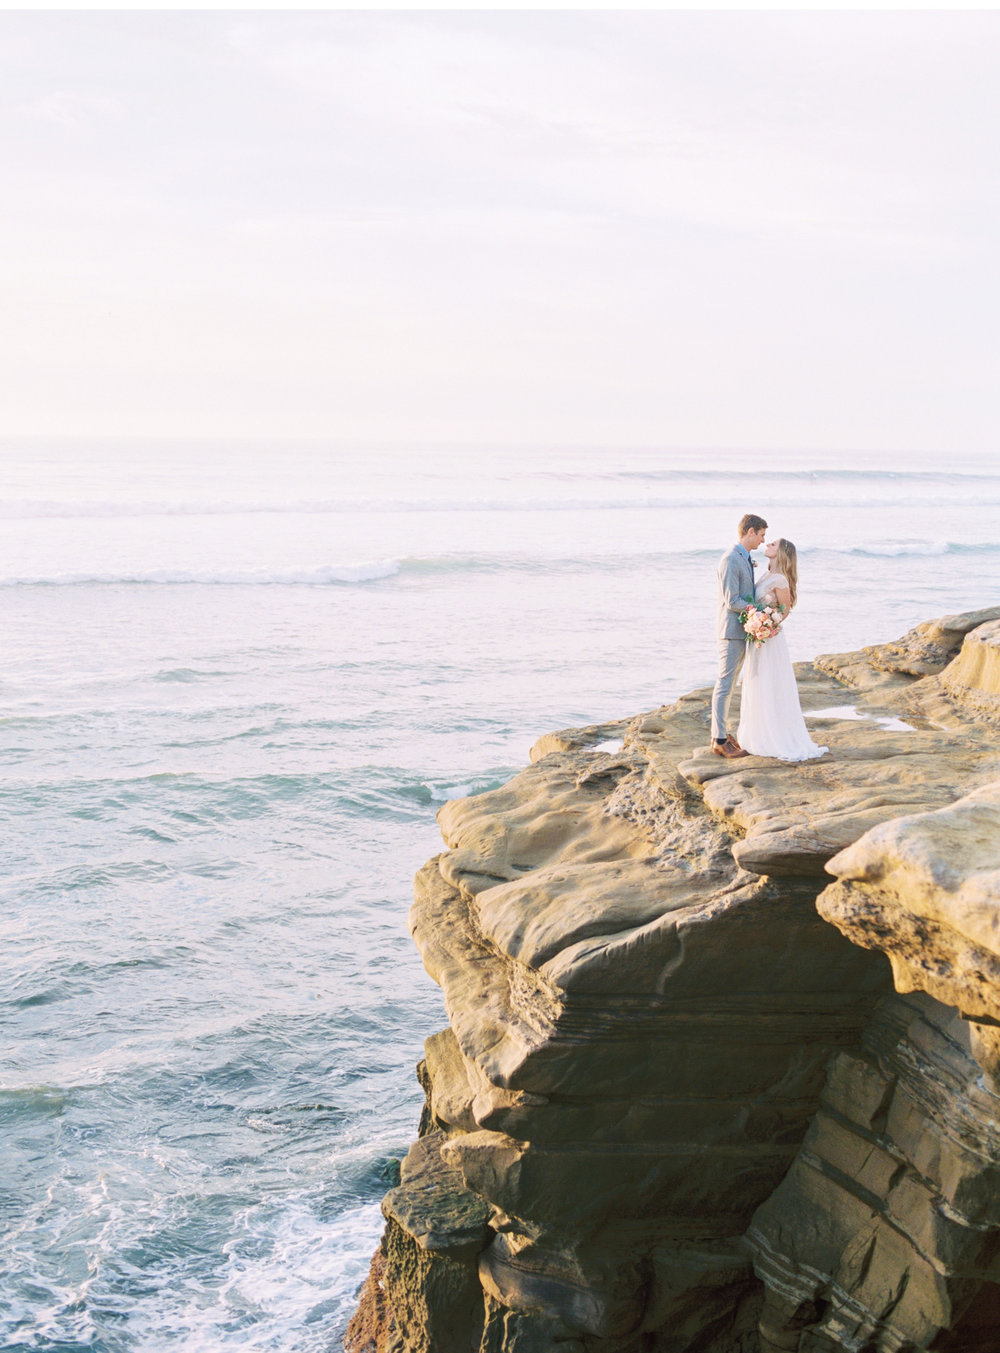 Fine-Art-Southern-California-Wedding-Photographer-Natalie-Schutt-Photography_03.jpg